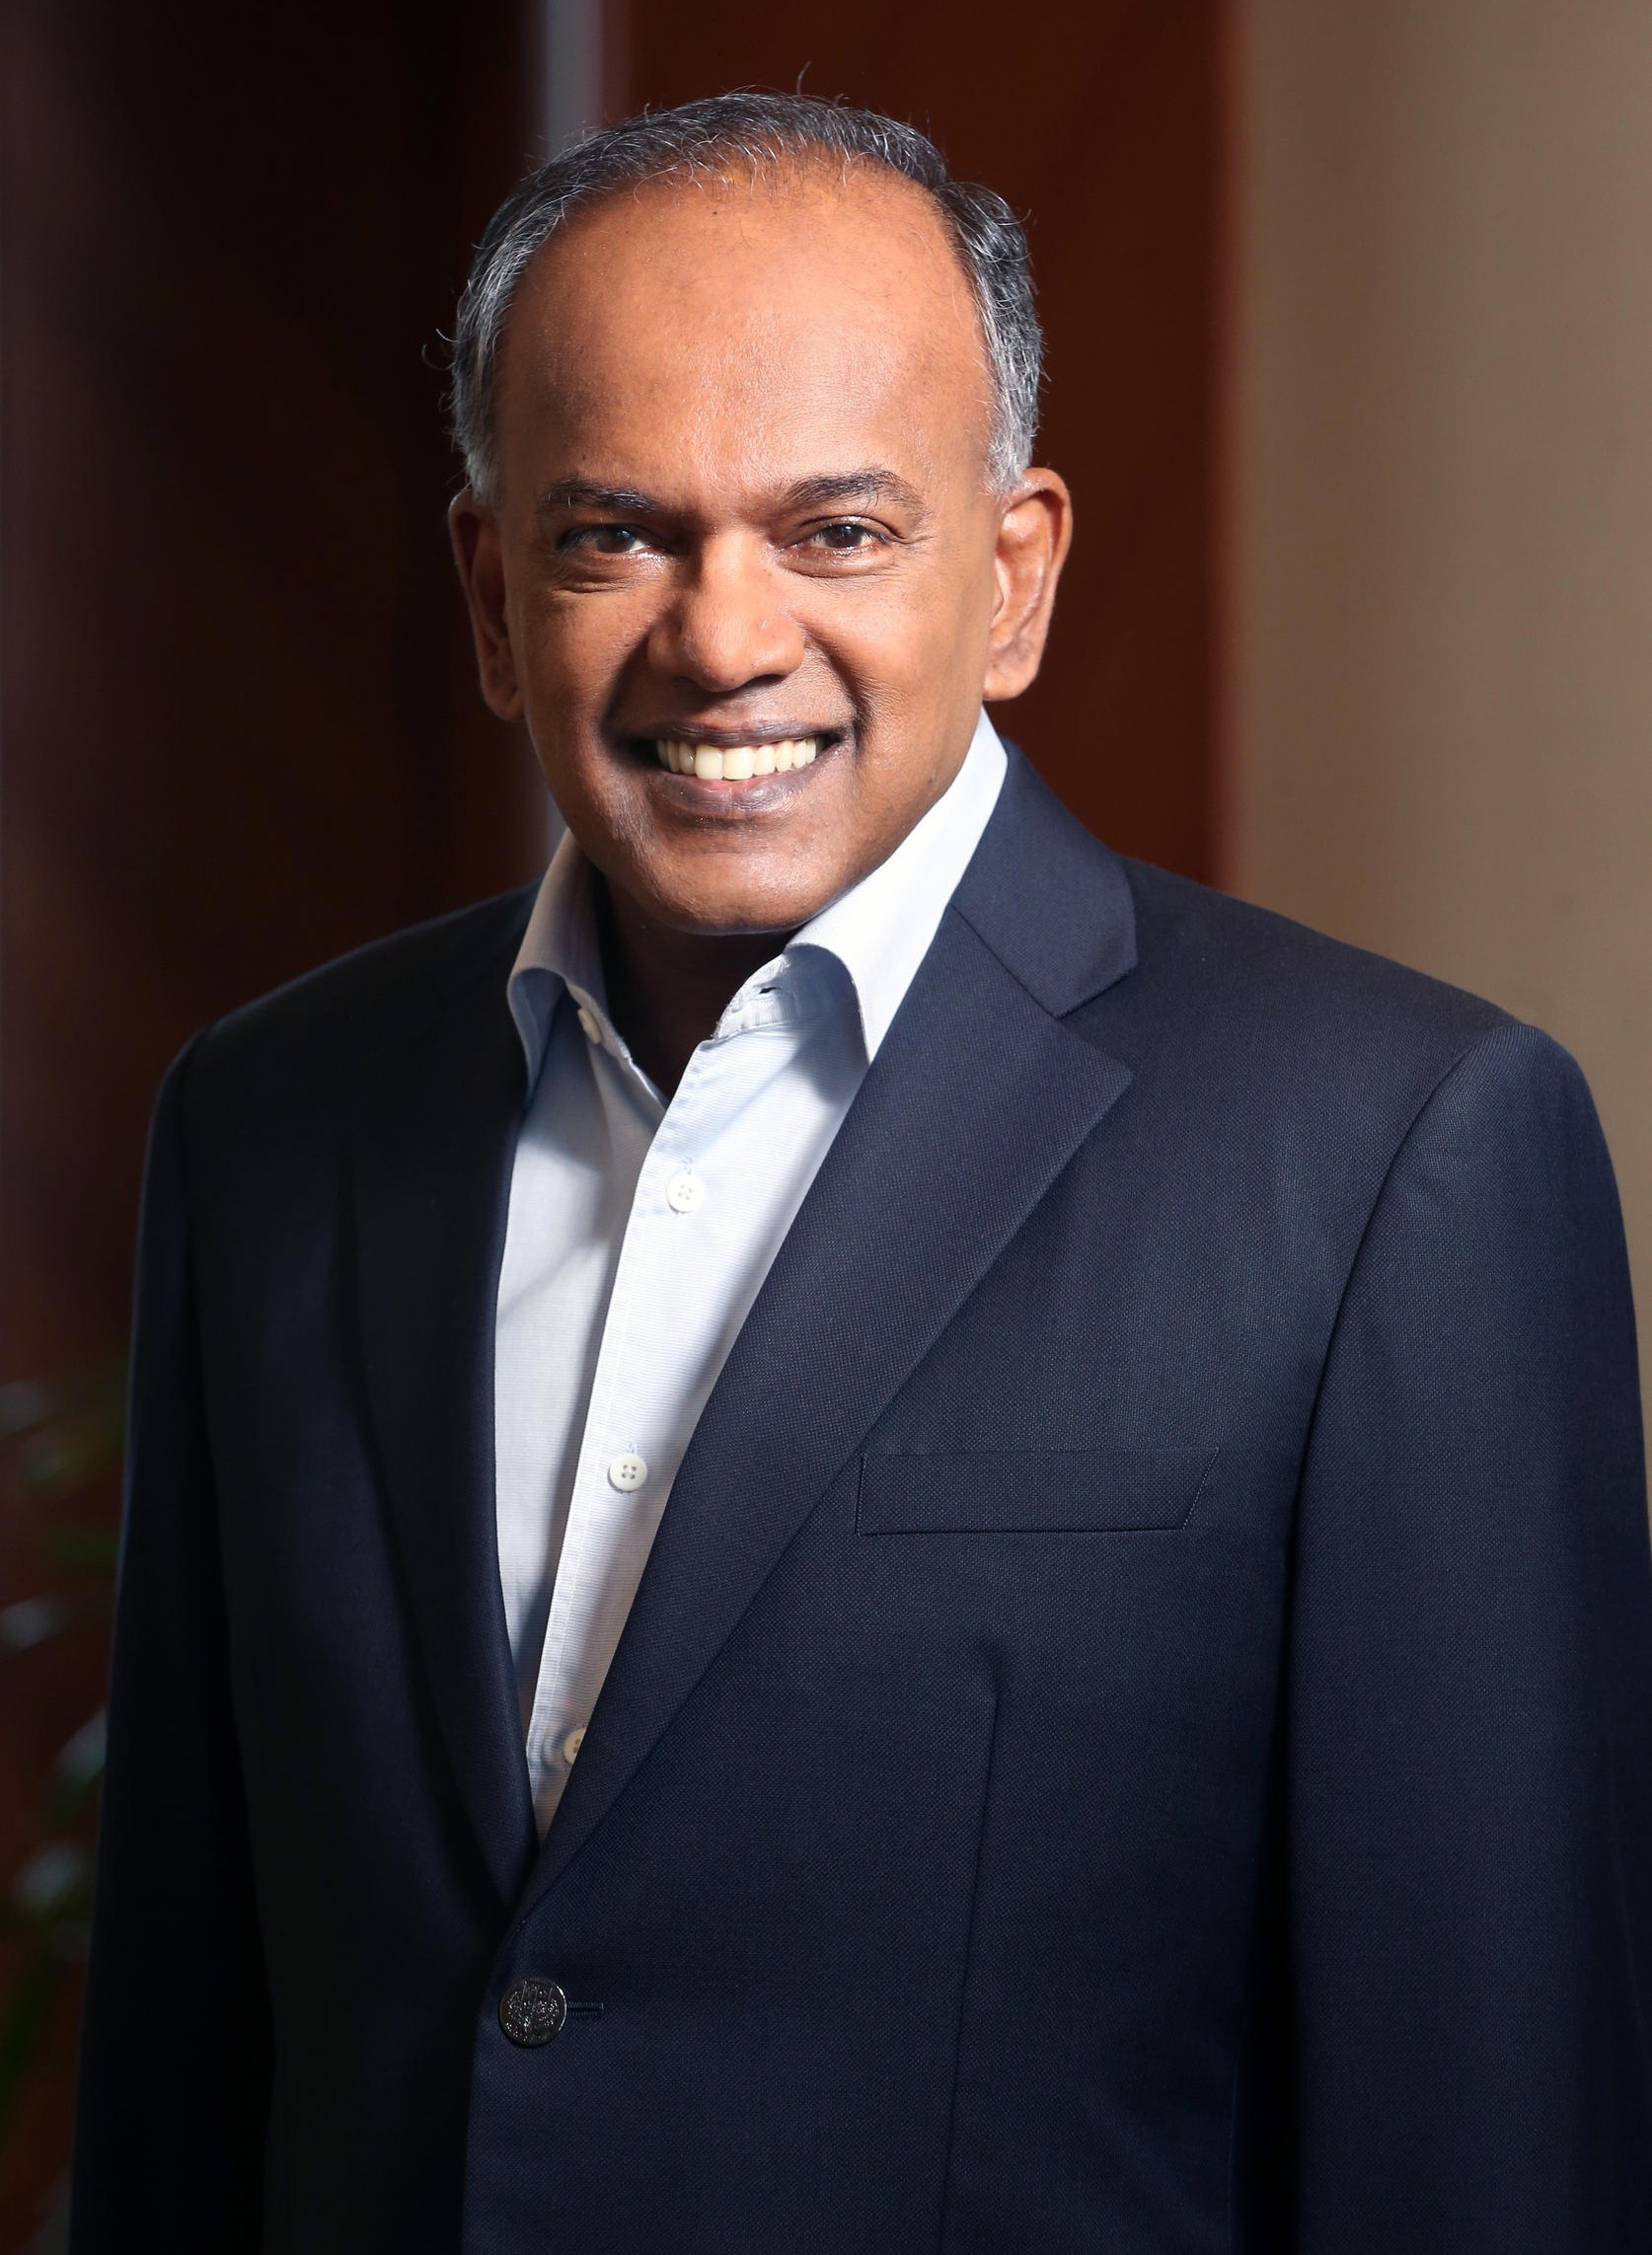 FCA Lunch Forum with Minister K Shanmugam on 2 Dec 2016